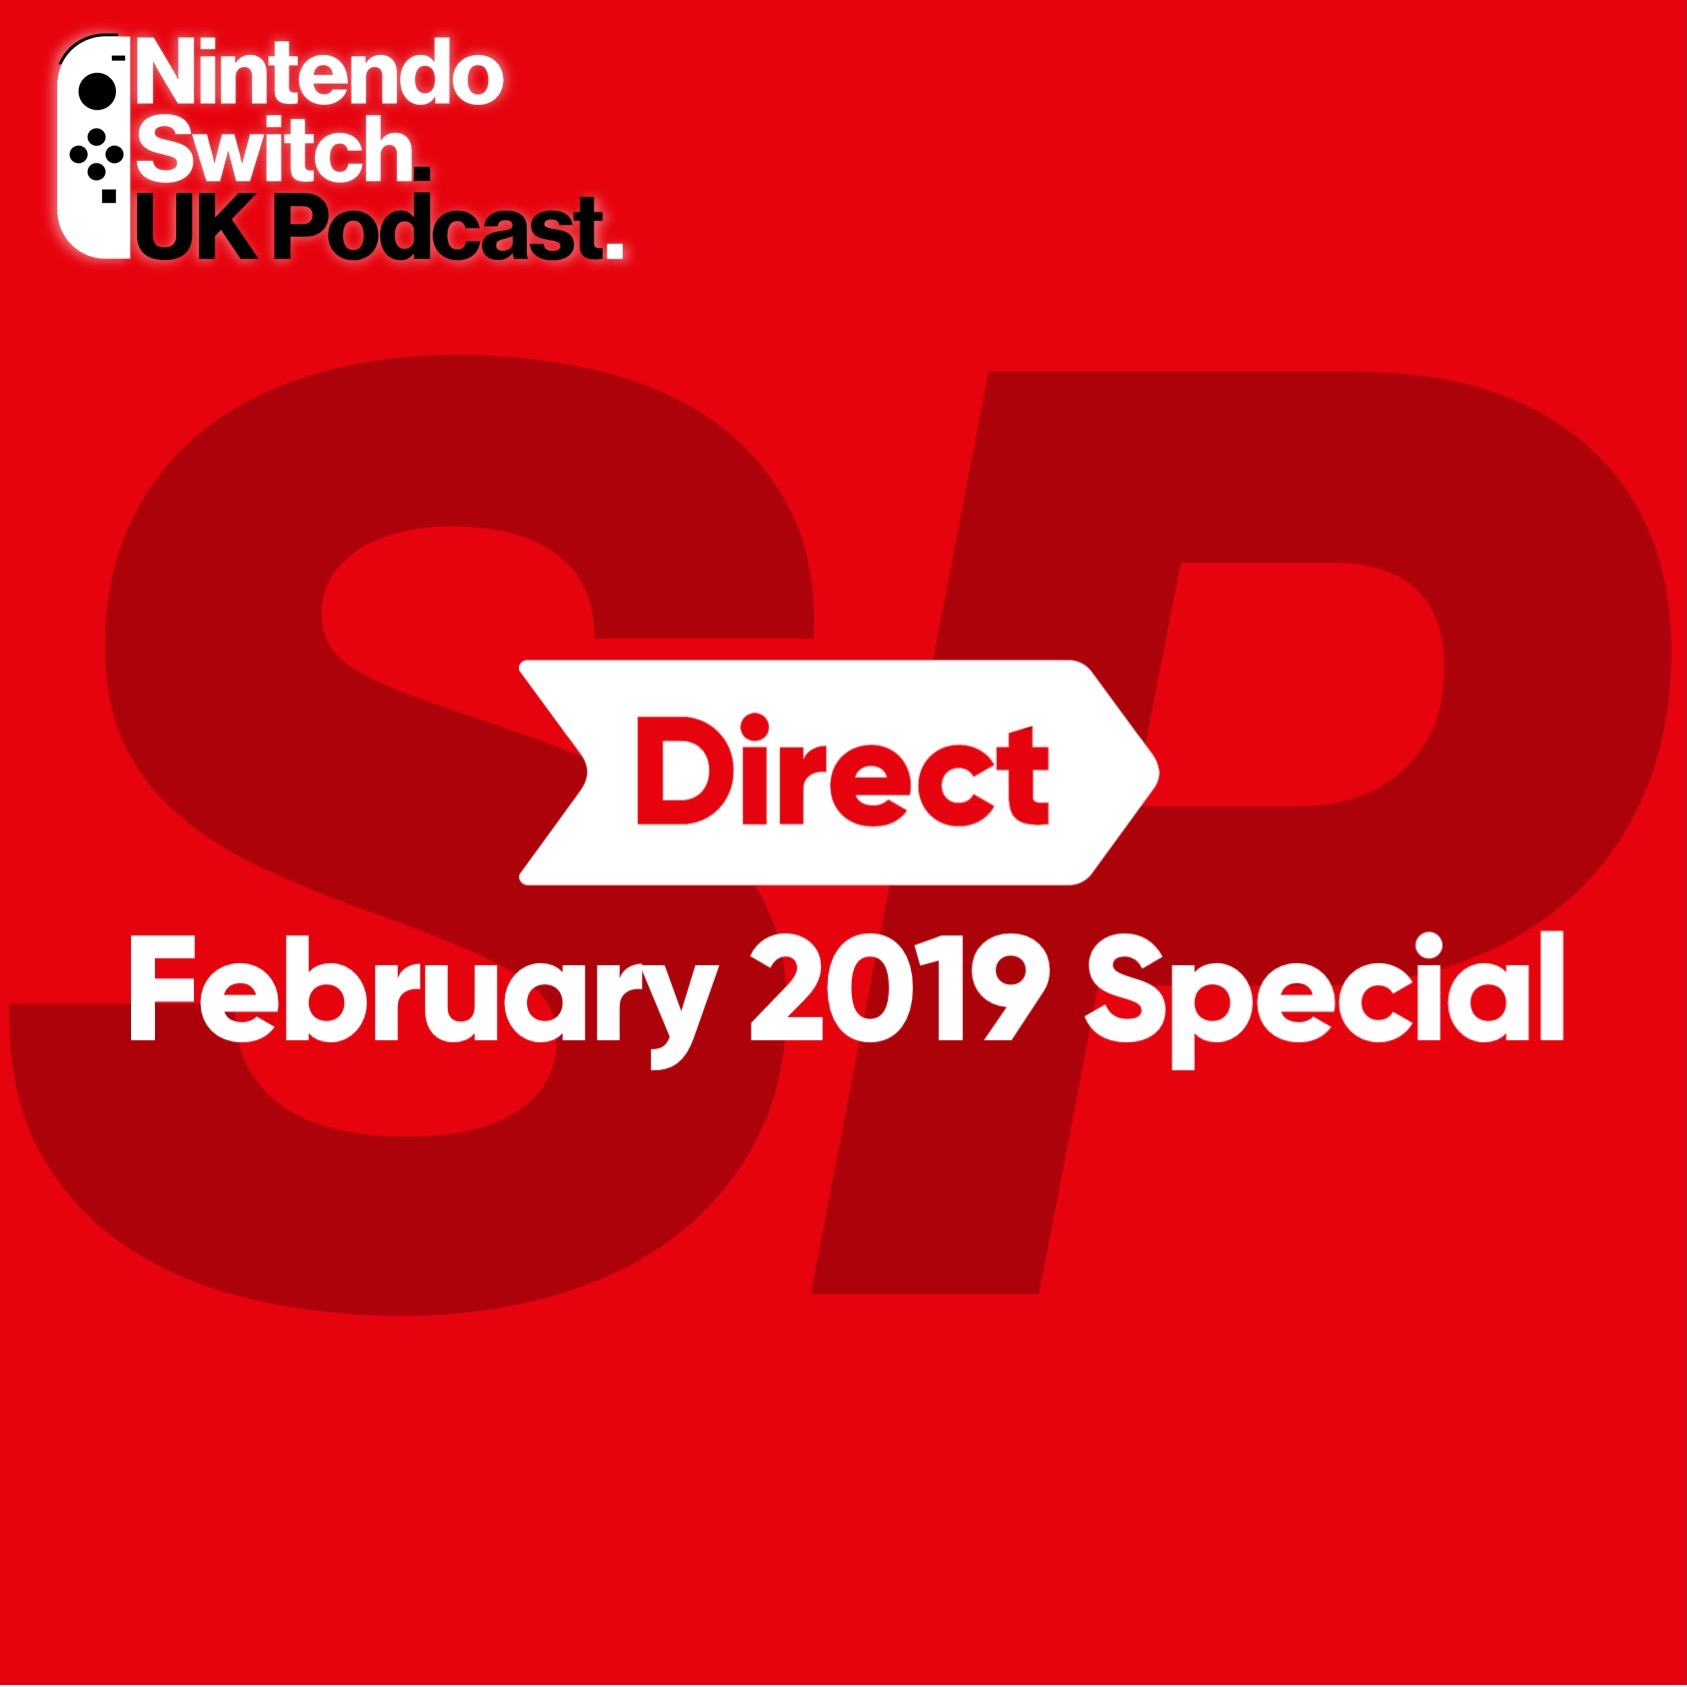 Nintendo Direct February 2019 Special — Nintendo Switch UK Podcast